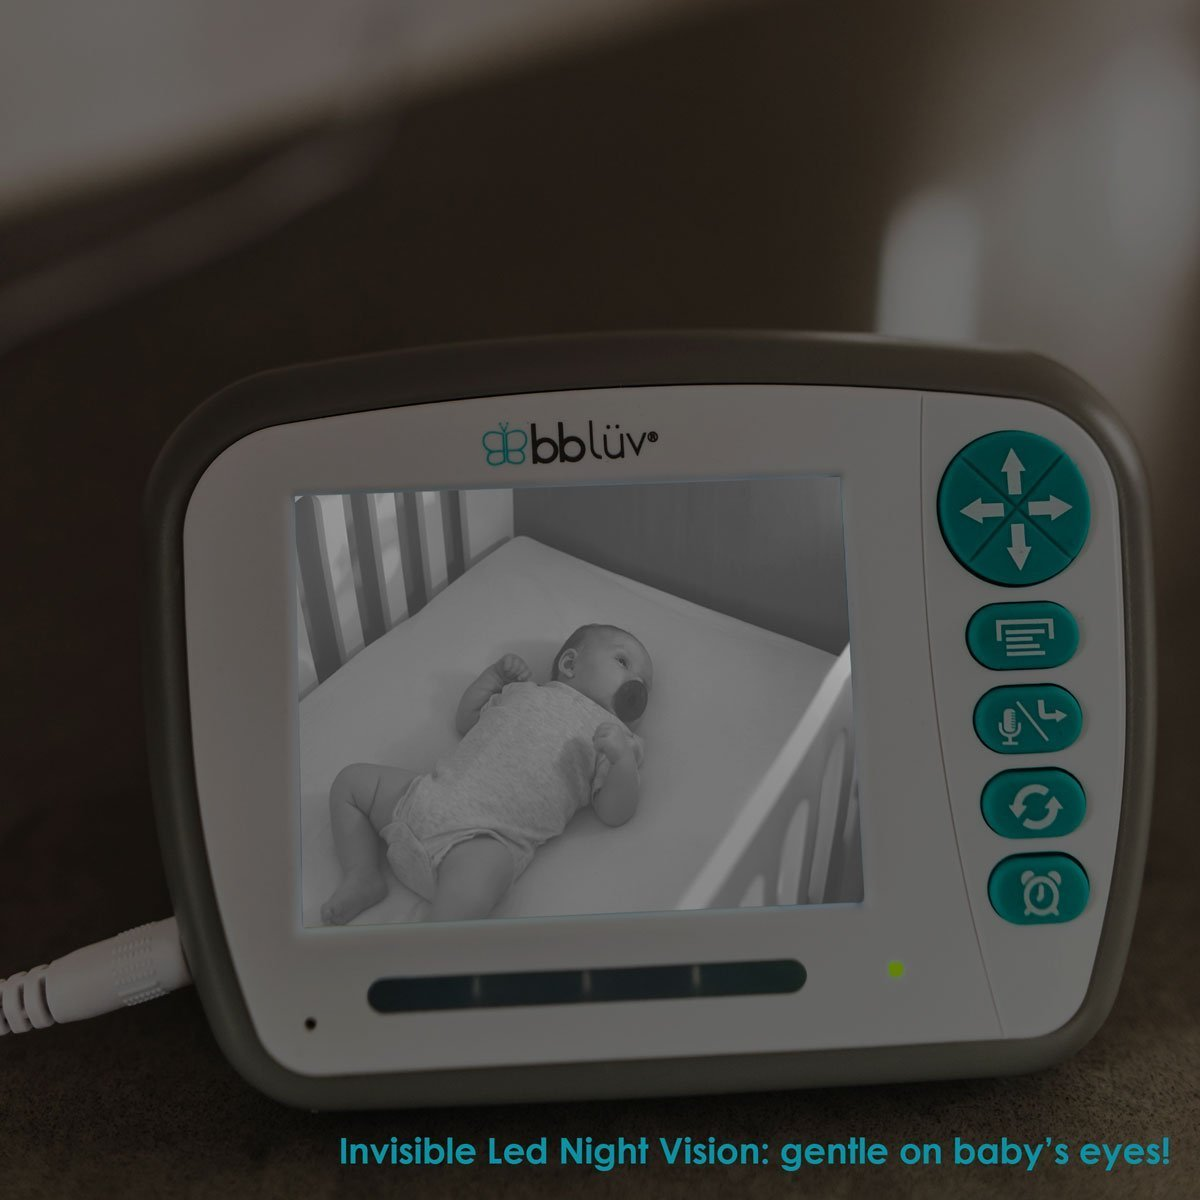 Viziö - All-in-One Wireless Digital Video Baby Monitor with 3.3 Inch Color LCD Screen and zoom